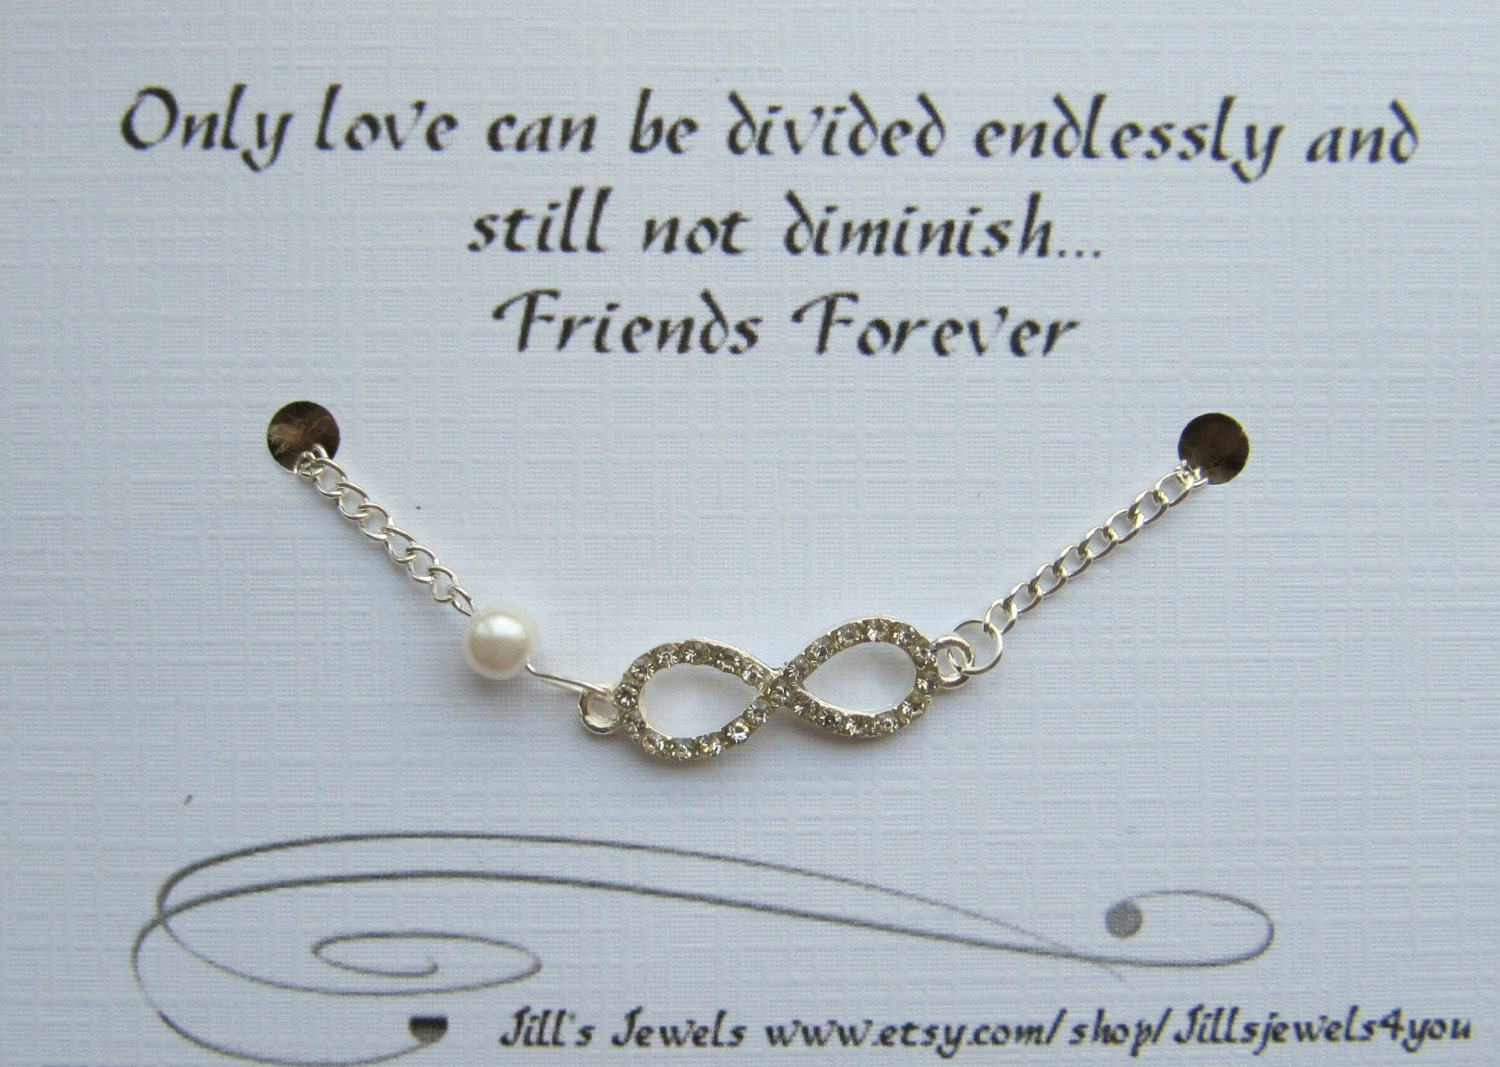 Infinity Love Quotes Friendship Bracelet Inspirational Gift Best Friend Gift